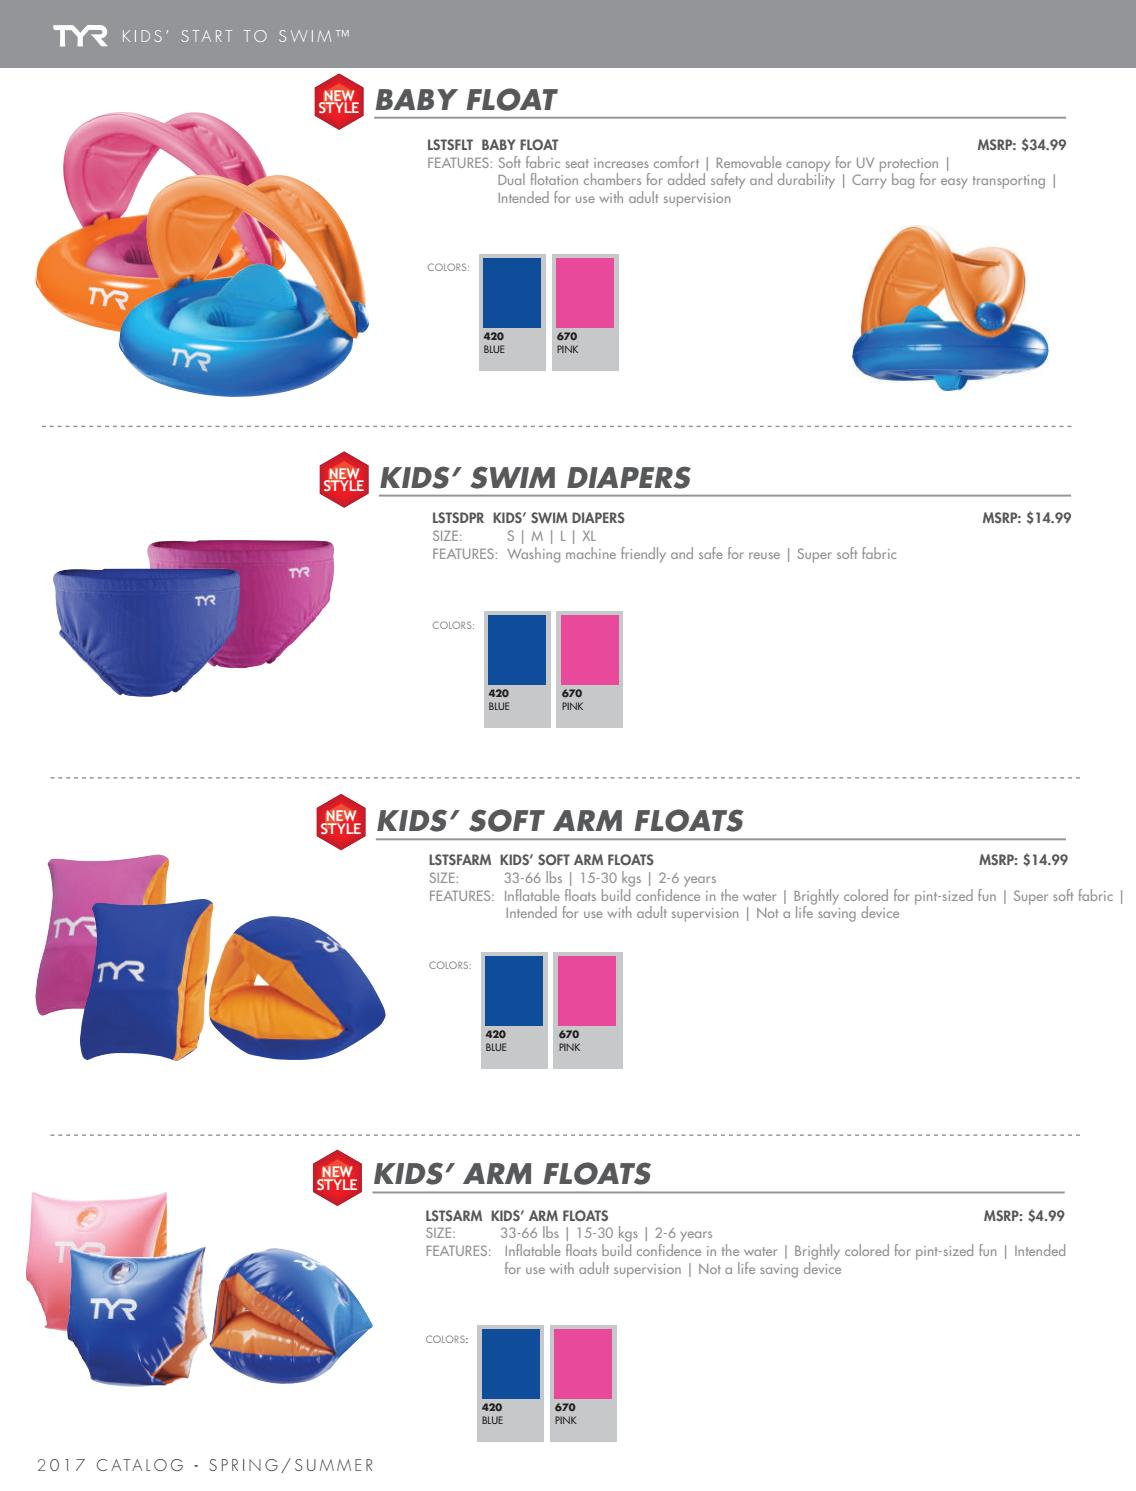 TYR Start To Swim Arm Floats kids 33-66 lbs inflatable floats build confidence